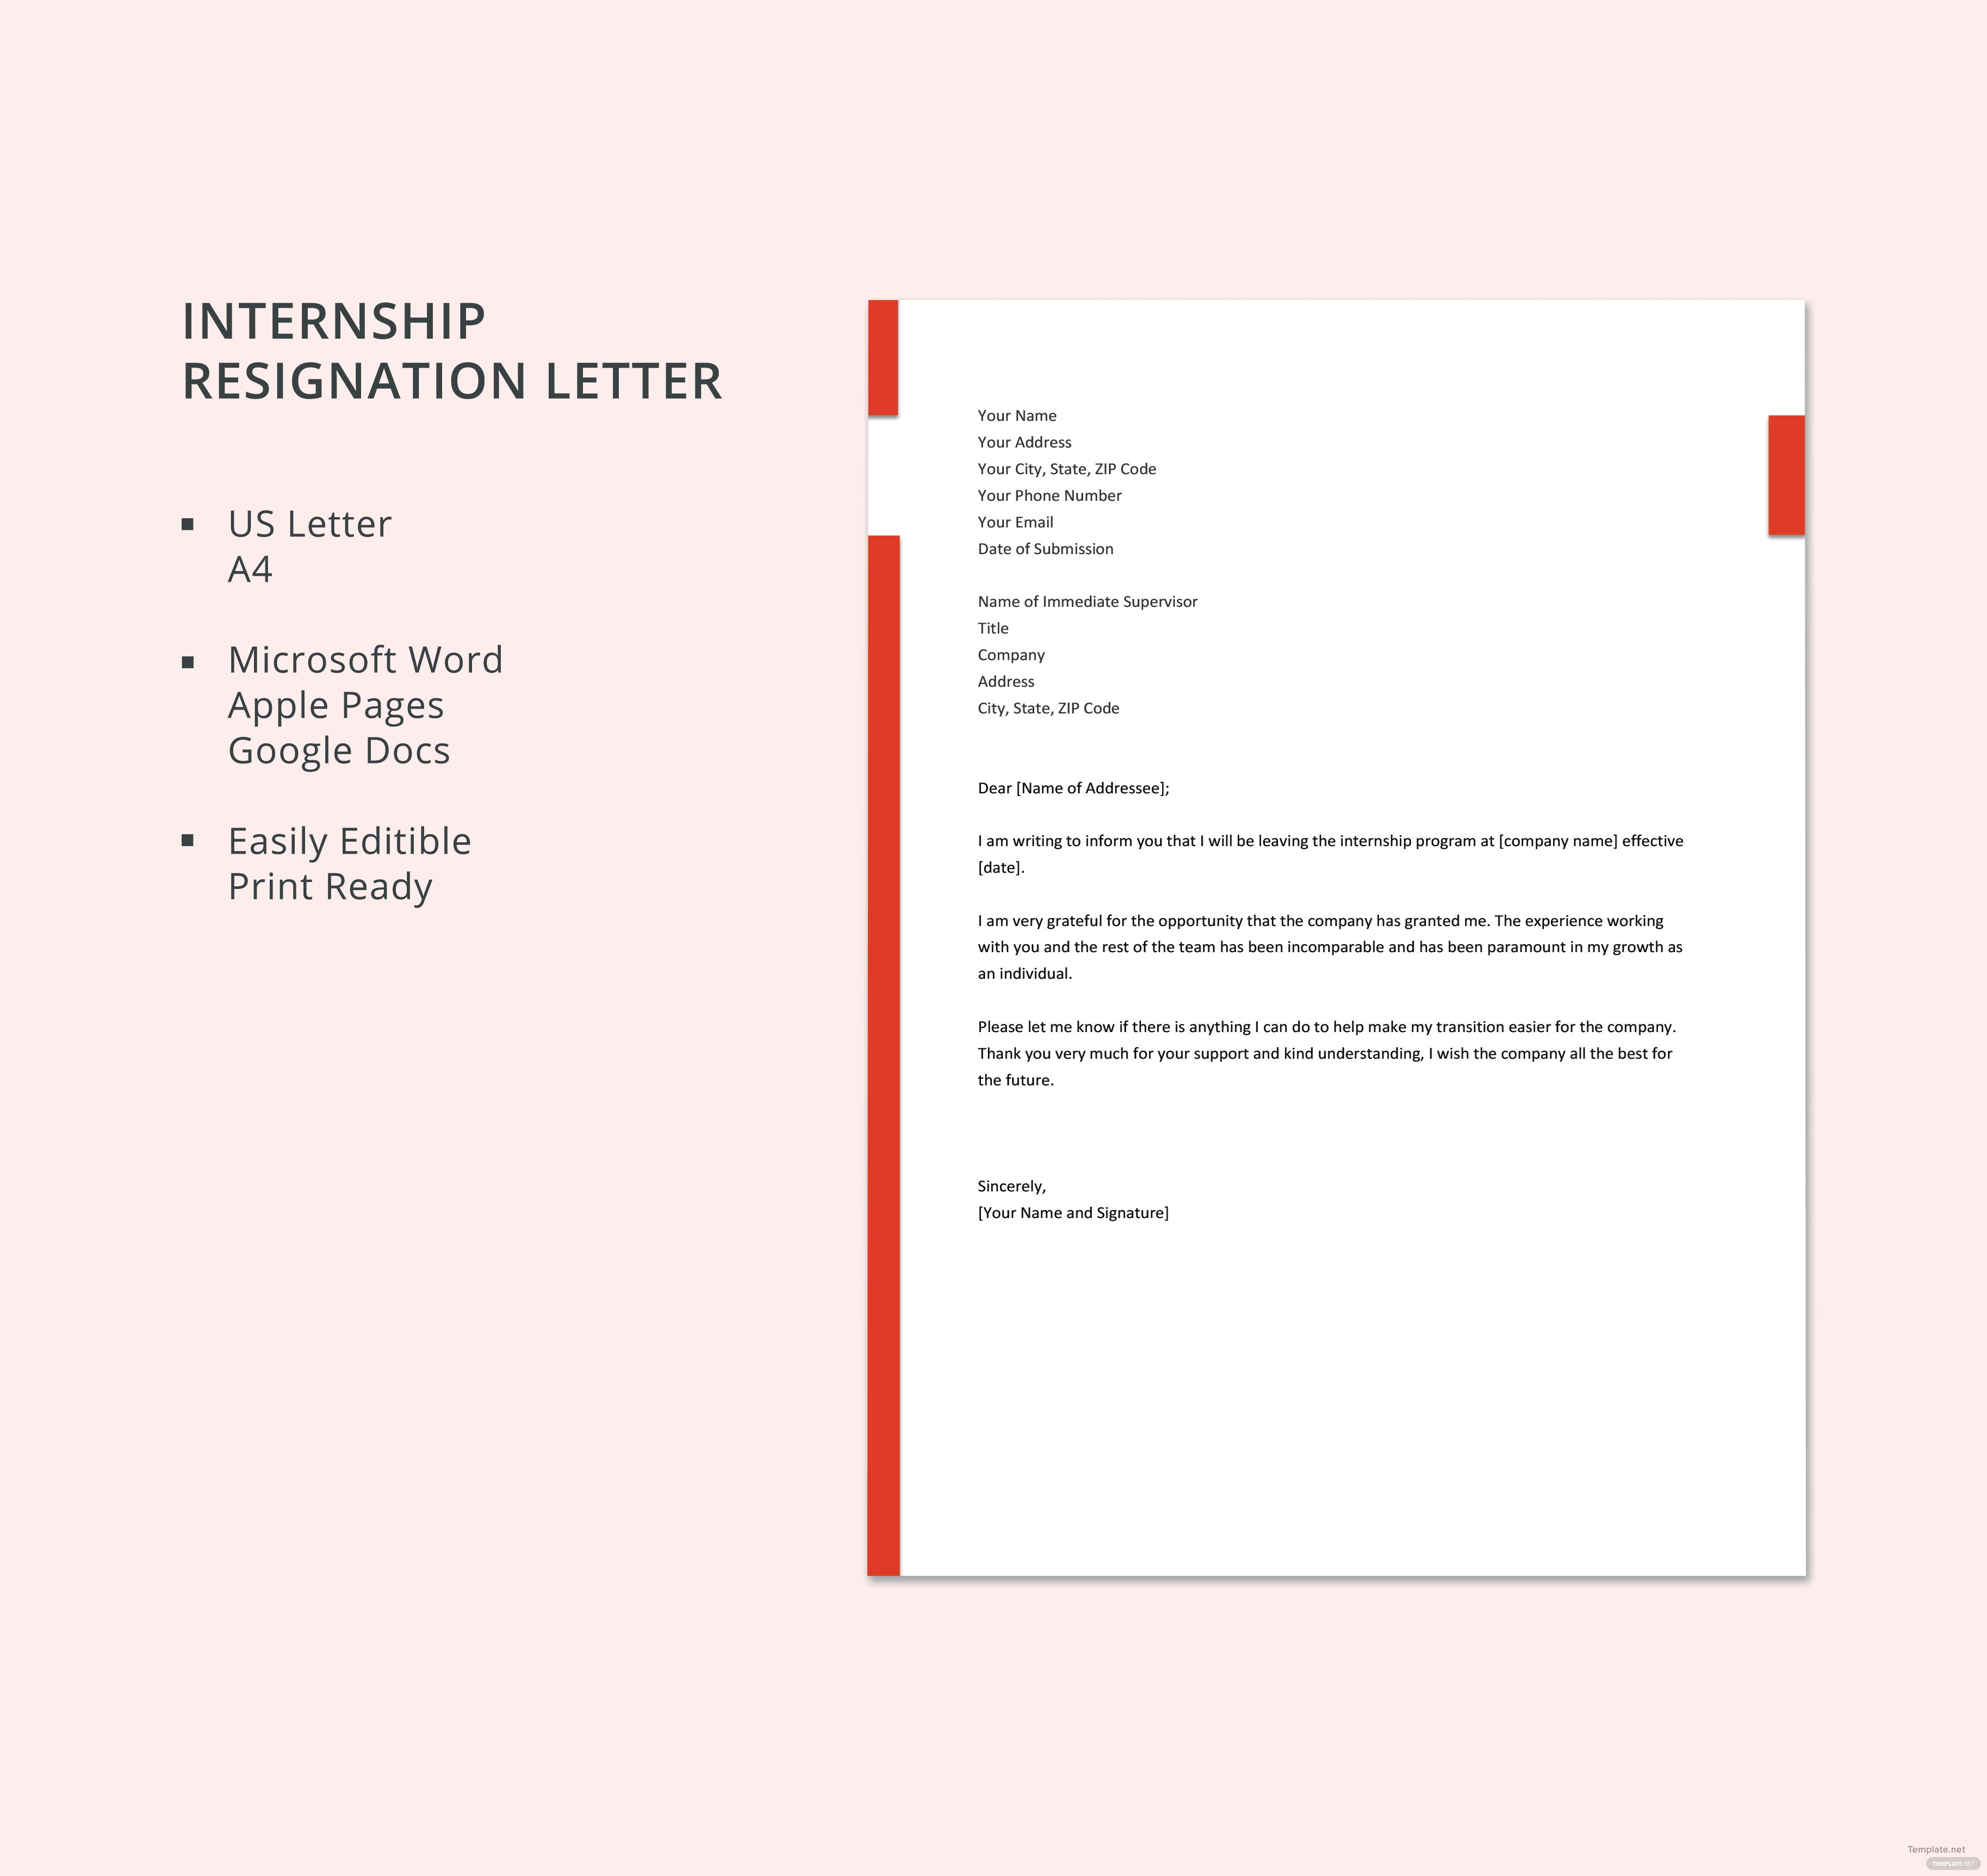 Free internship resignation letter template in microsoft word apple free internship resignation letter template spiritdancerdesigns Gallery